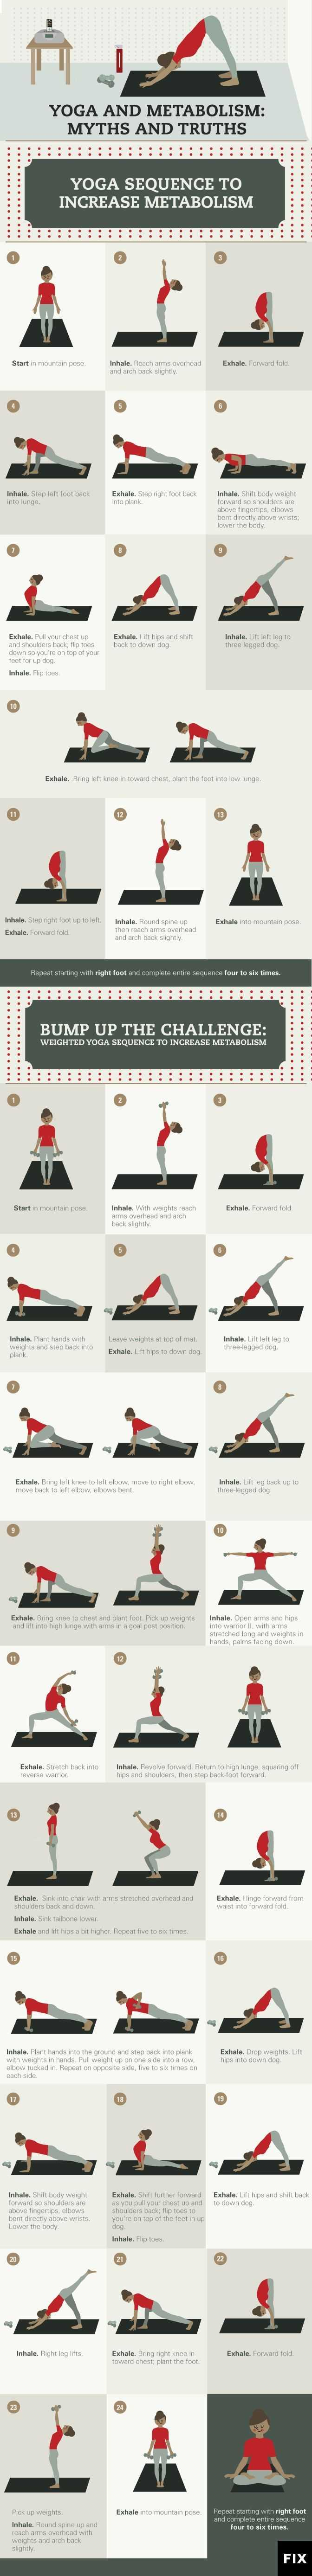 Yoga Poses To Boost Metabolism